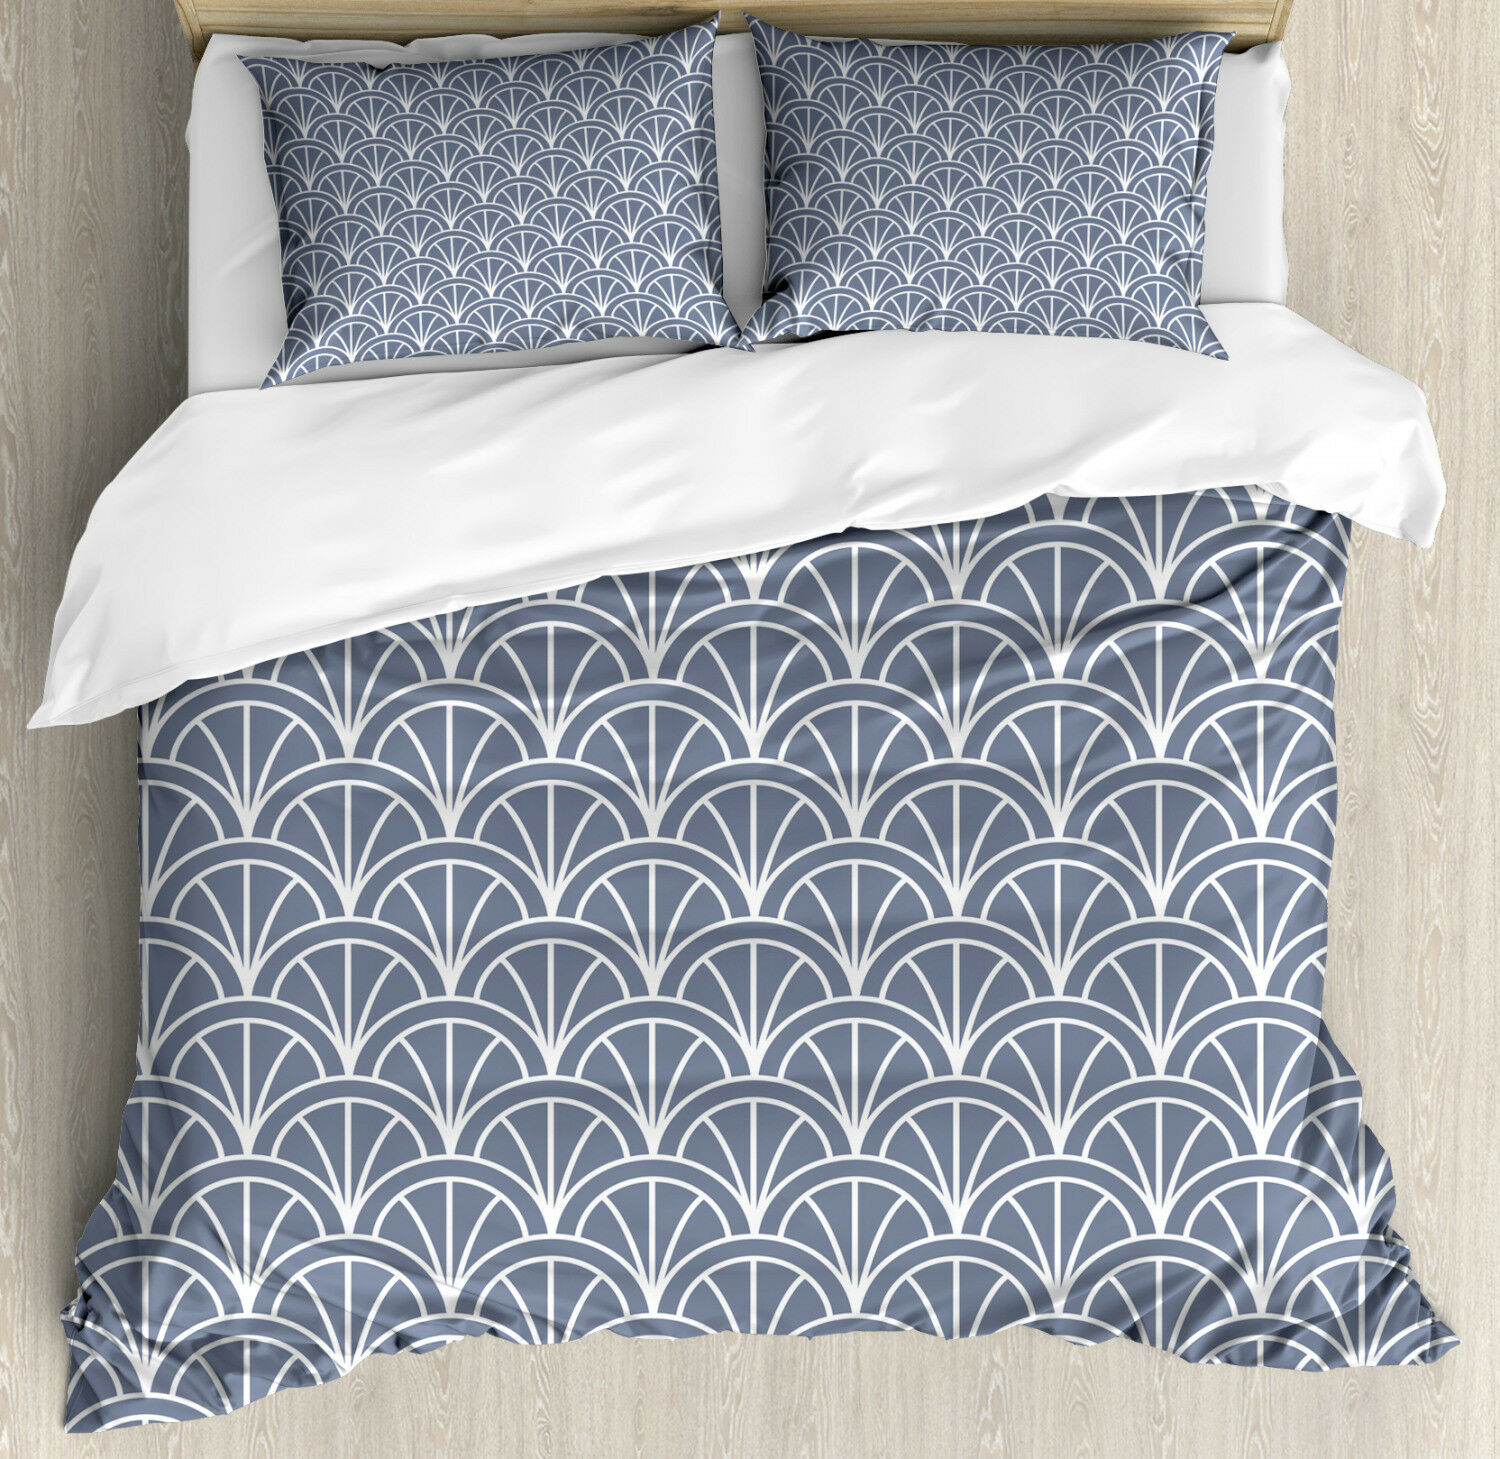 Geometric Duvet Cover Set with Pillow Shams Nautical Wave Pattern Print